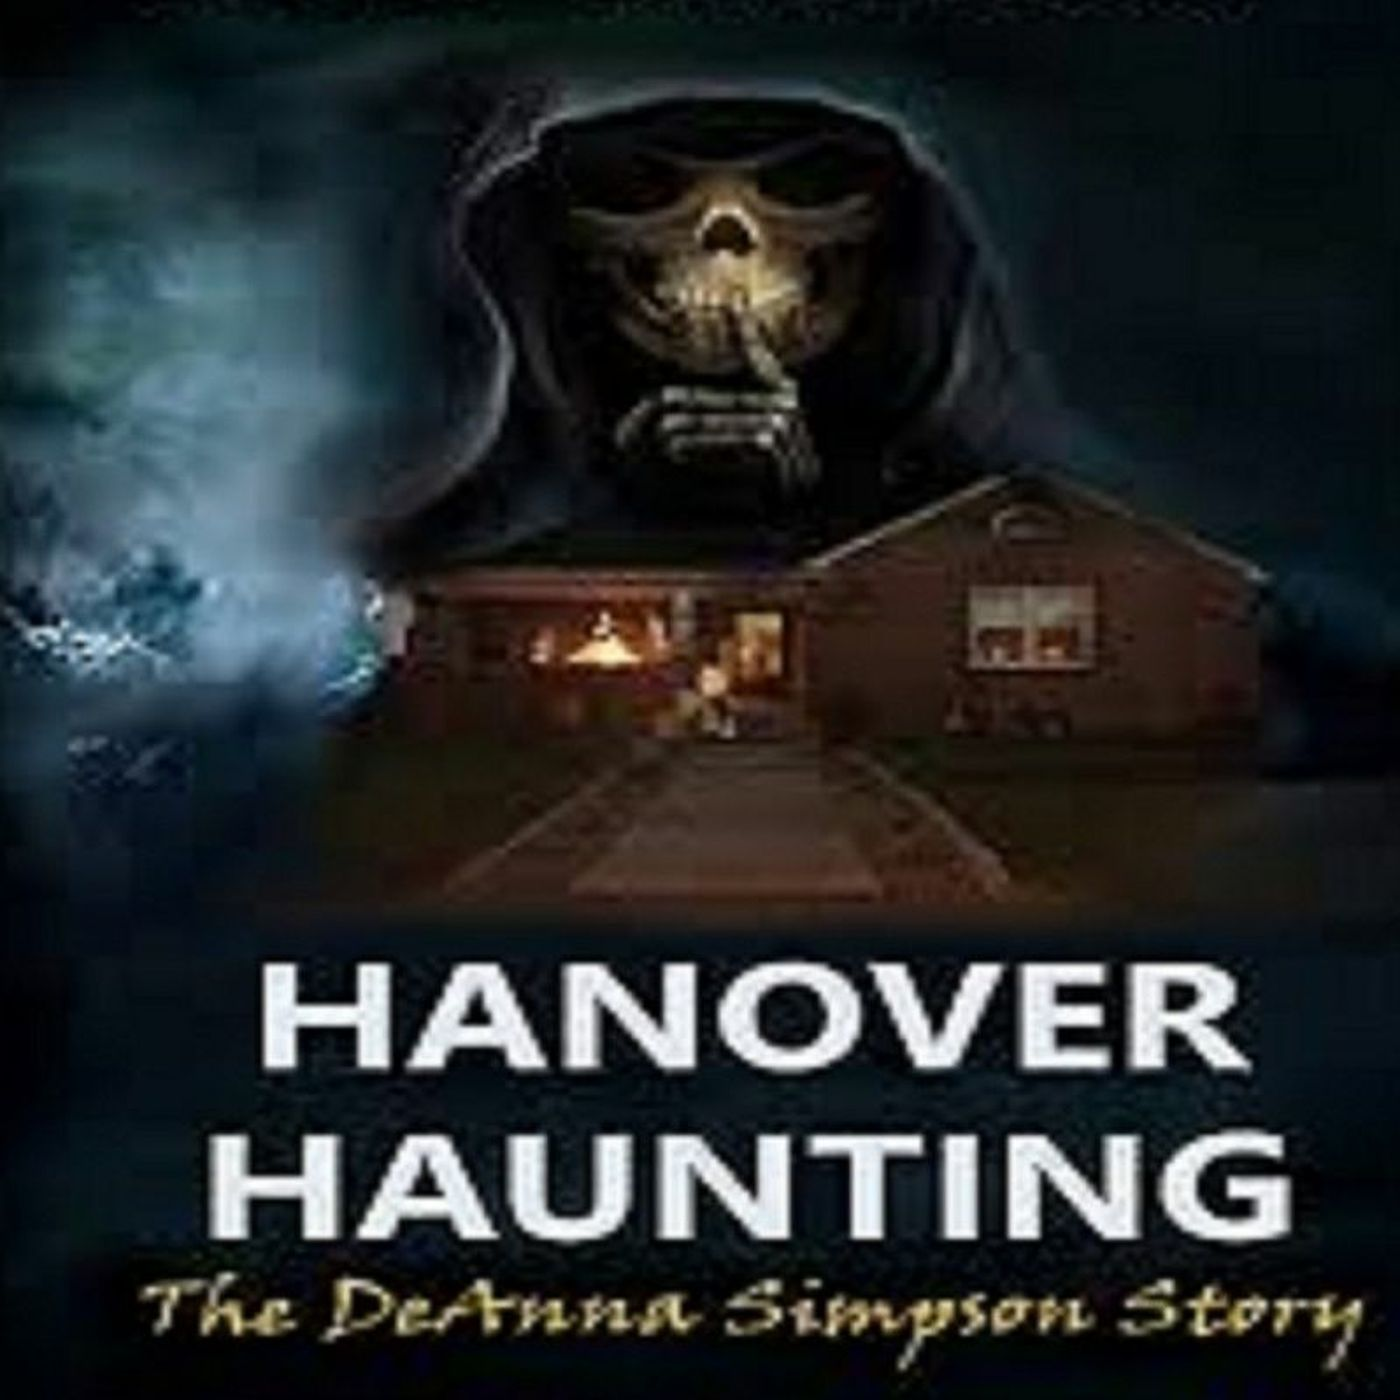 Looking Into The Hanover Haunting & More with Joni Mayhan